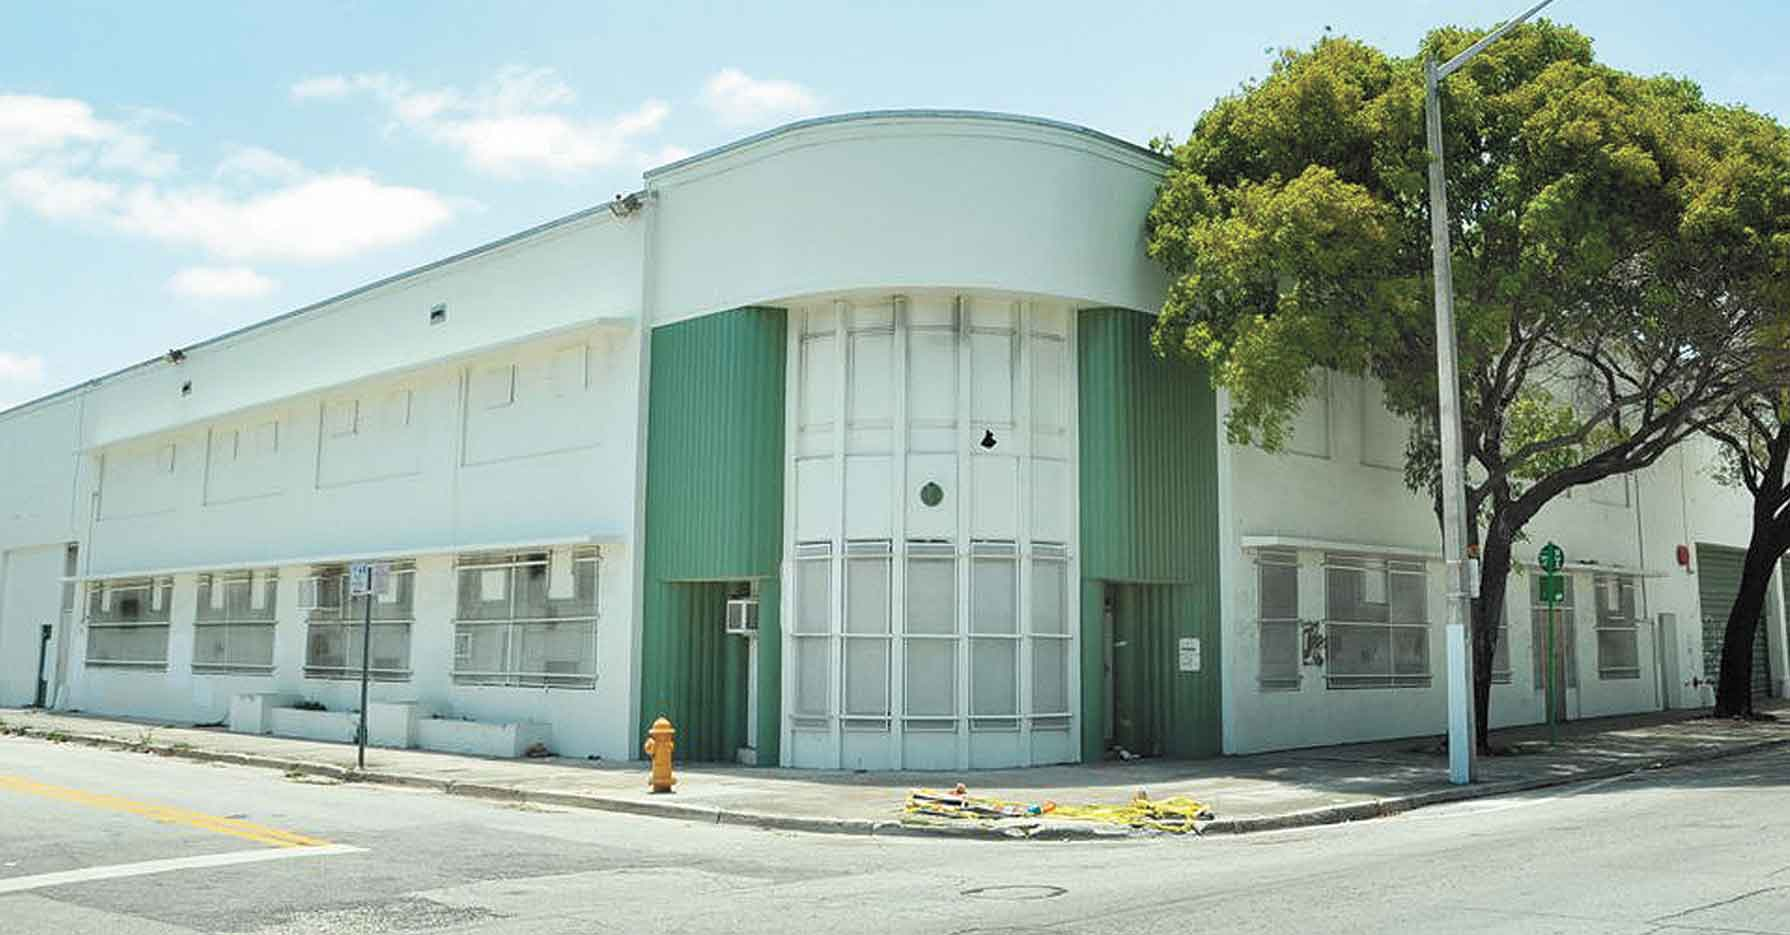 Miami movie studio complex delayed